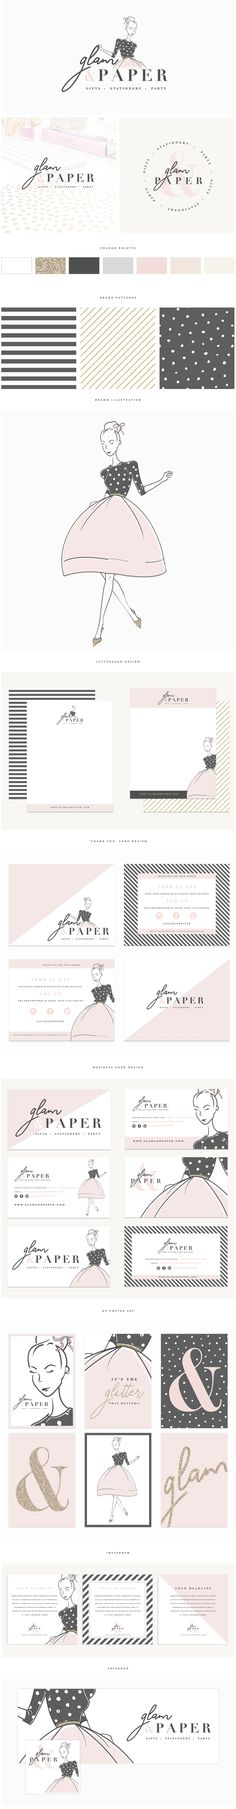 Brand Design | Glam & Paper » Brand Me Beautiful                                                                                                                                                                                 More